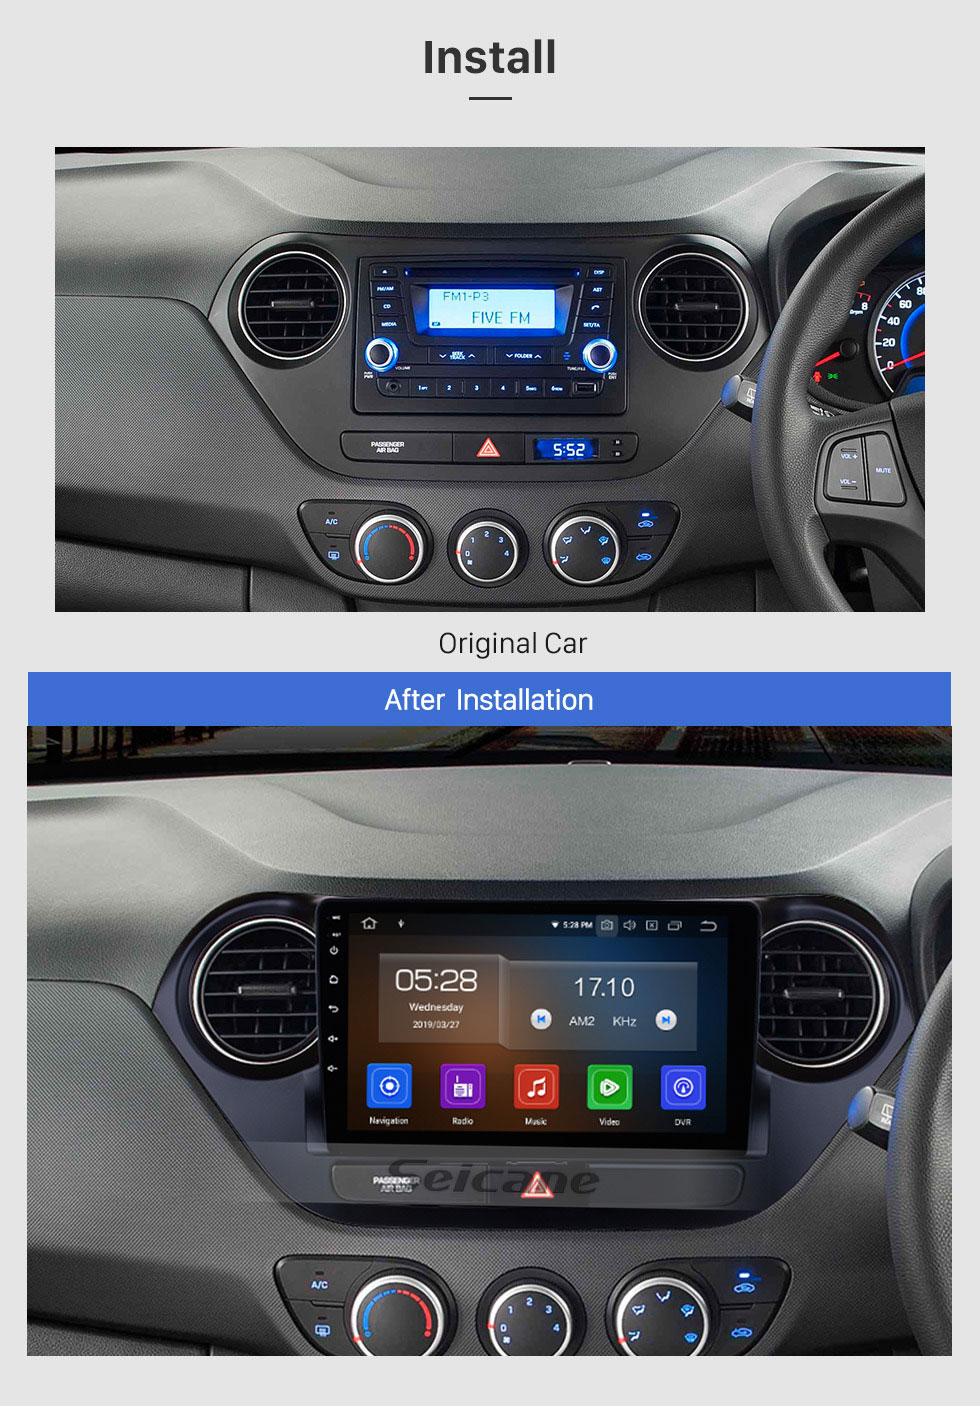 Seicane 9 inch Android 9.0 GPS Navigation System HD Touch Screen Radio 2013-2016 Hyundai I10 Right Peptide Support OBD2 Bluetooth DVD Player DVR Rearview Camera TV Video Steering Wheel Control WIFI